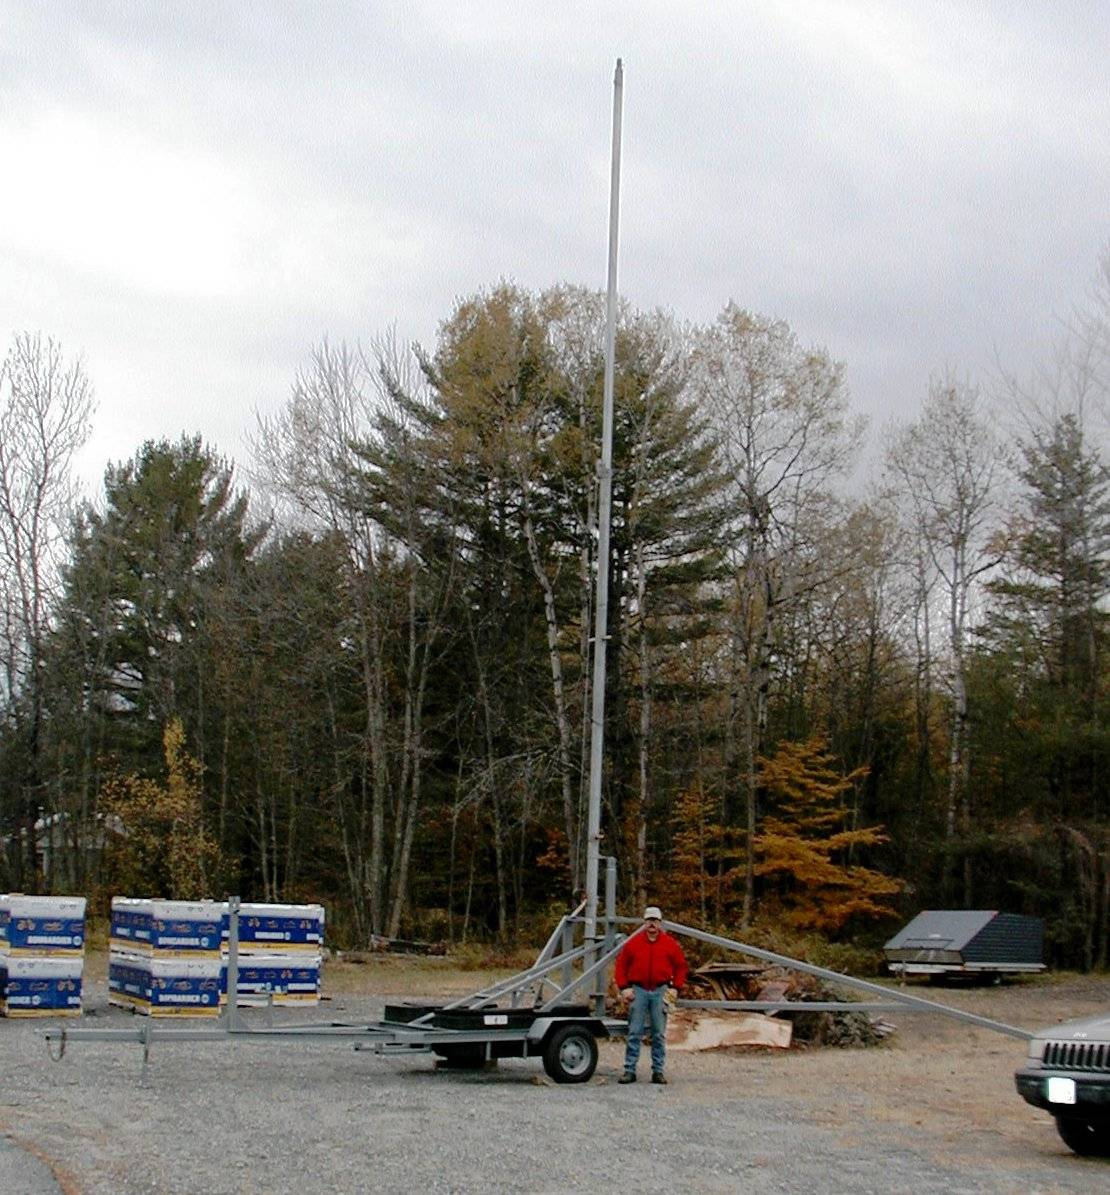 The old tower trailer - fully erect